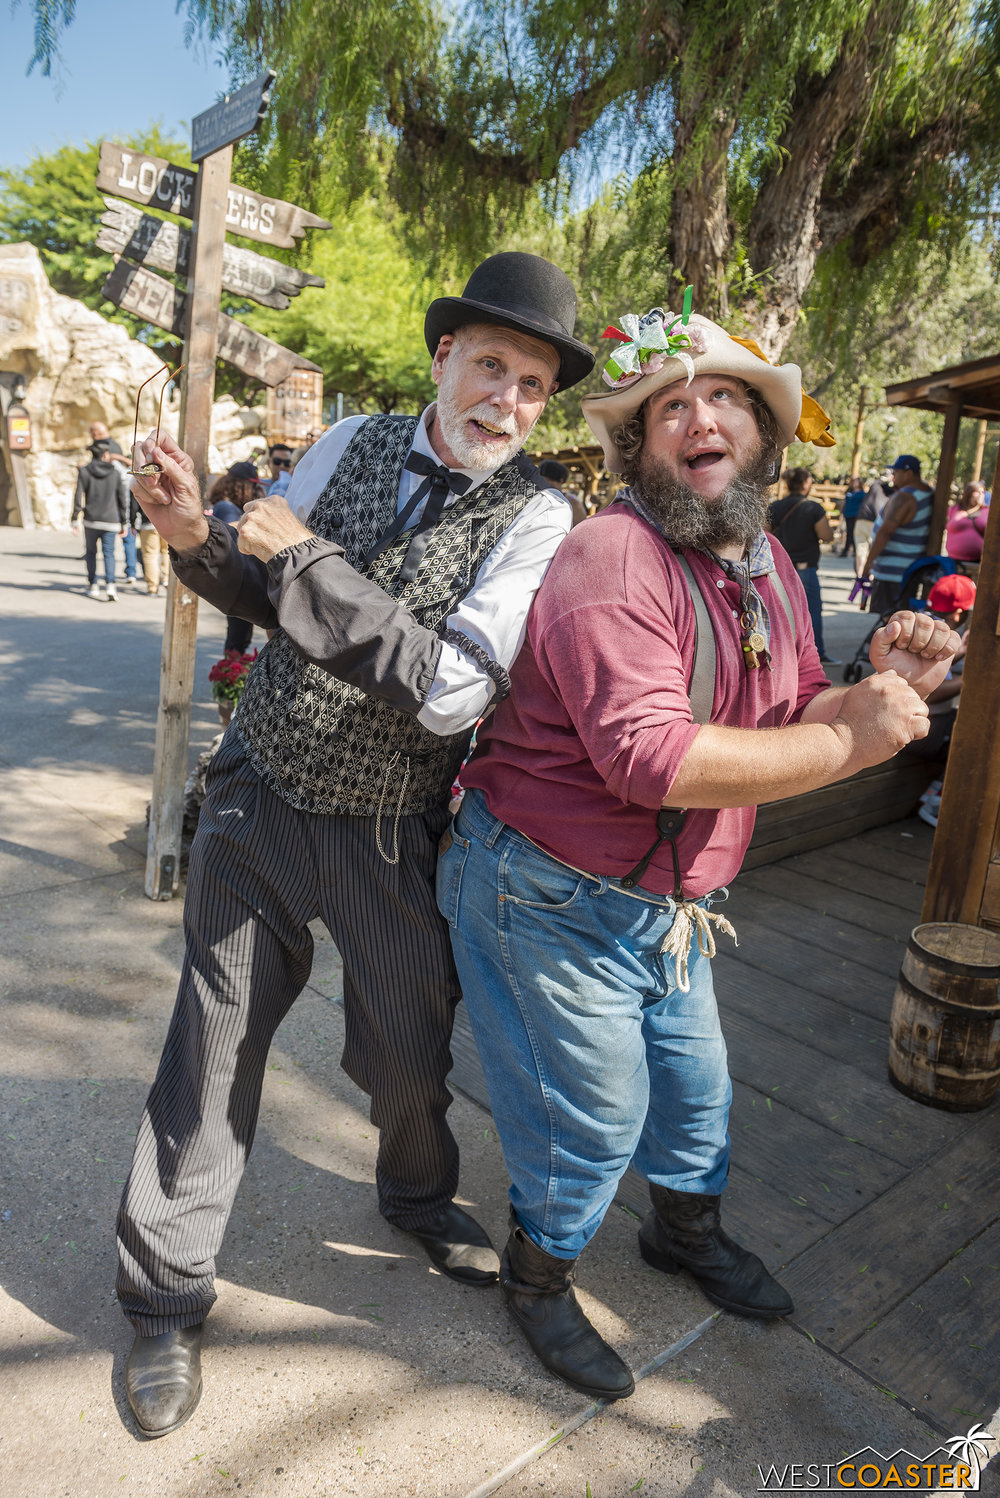 Zeke Connelly (left) and Prospector Flint Stahlek share a silly moment outside of the Assayer's Office.  But Zeke worries about the delayed stagecoach, which is carrying his beloved wife to back to town.